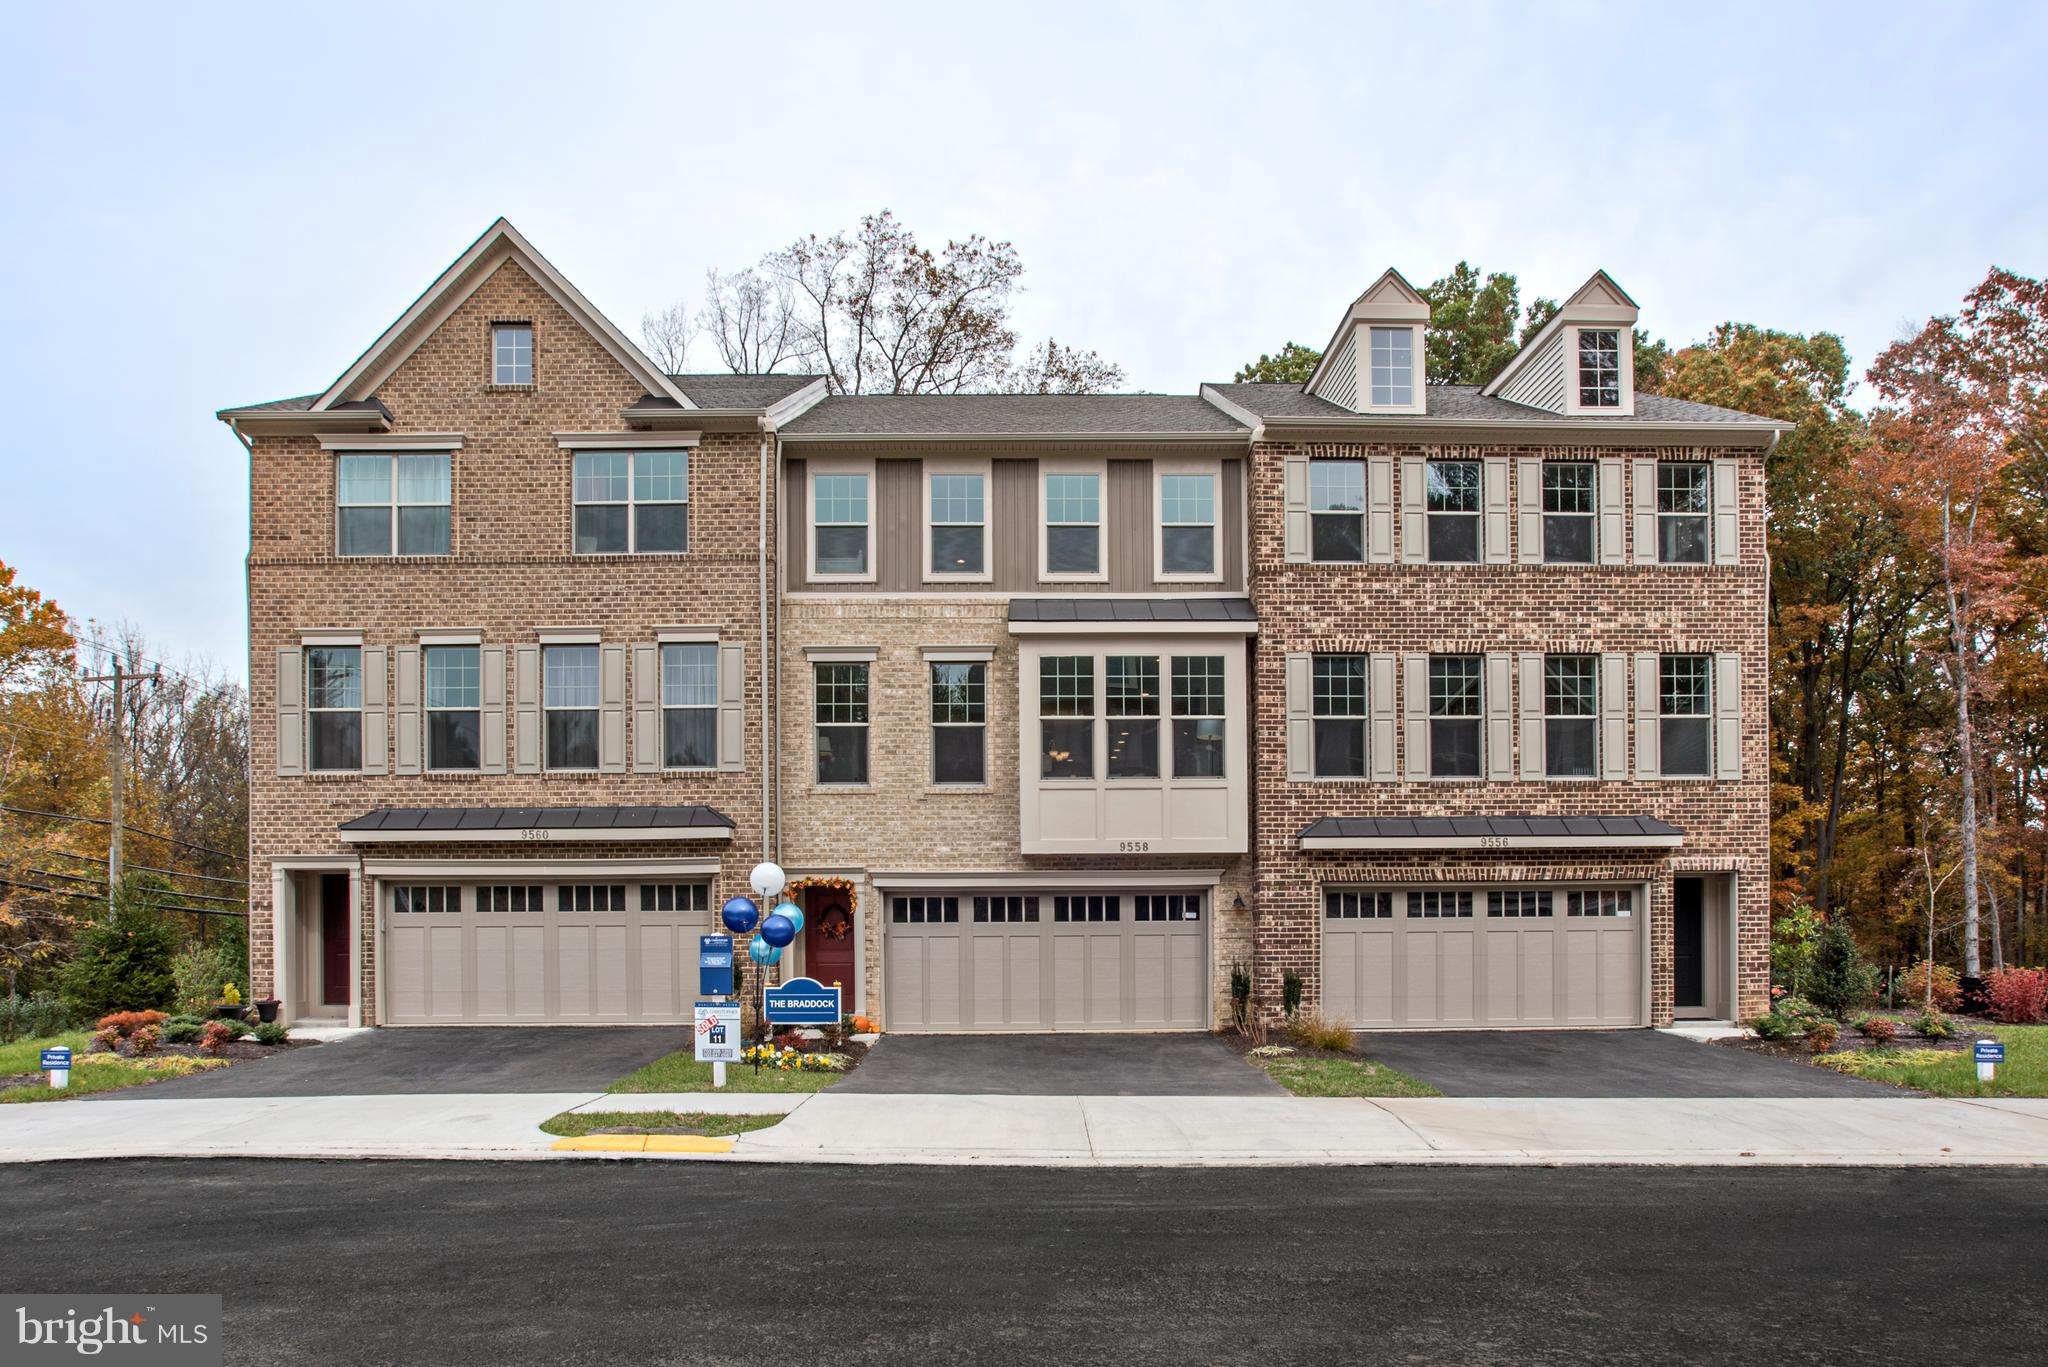 A brand new, handcrafted corner townhome in one of Fairfax County~s most desirable cities. Experience the convenience of ample walking-distance shopping surrounded by walking-distance parkland w miles of trails. Ride the VRE train located less than 1 mile away into DC. This modern design features a 2car garage, modern mid-kitchen, immense master closet & giant walk-in shower. Ready Fall 2018.